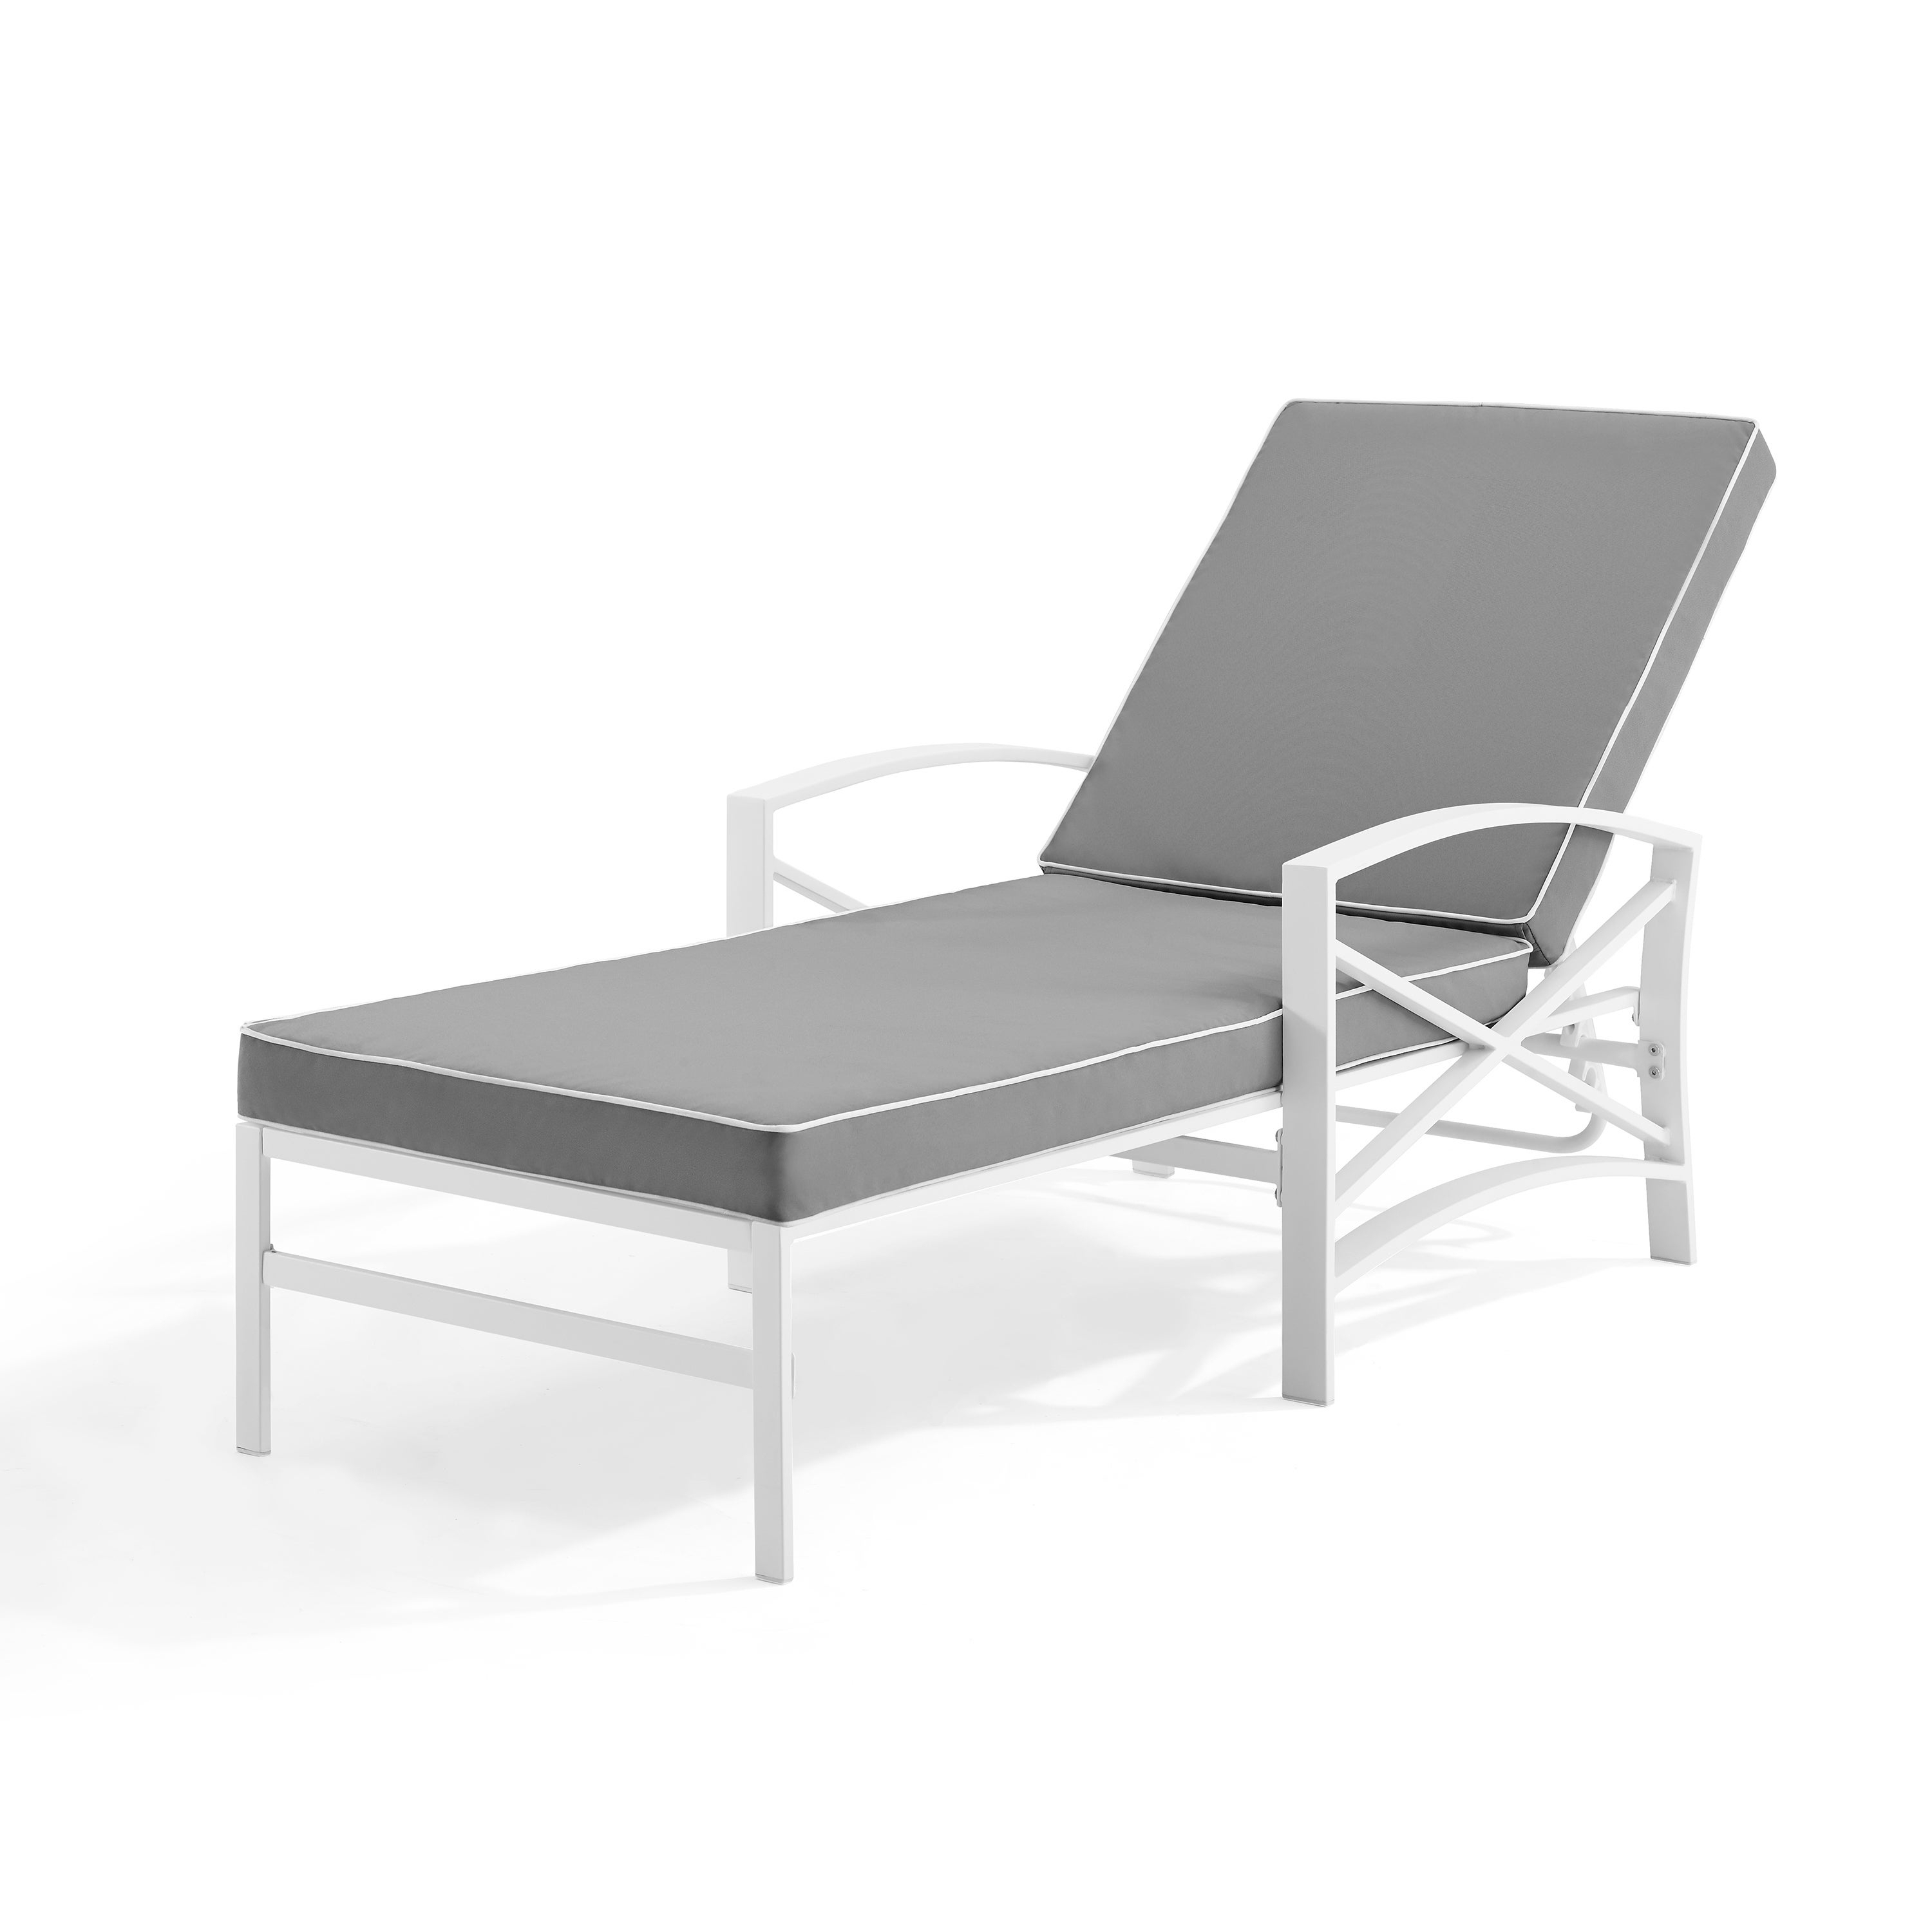 Havenside Home Davis Chaise Lounge Chair In White With Grey Cushions For Widely Used Lounge Chairs In White With Grey Cushions (View 2 of 25)